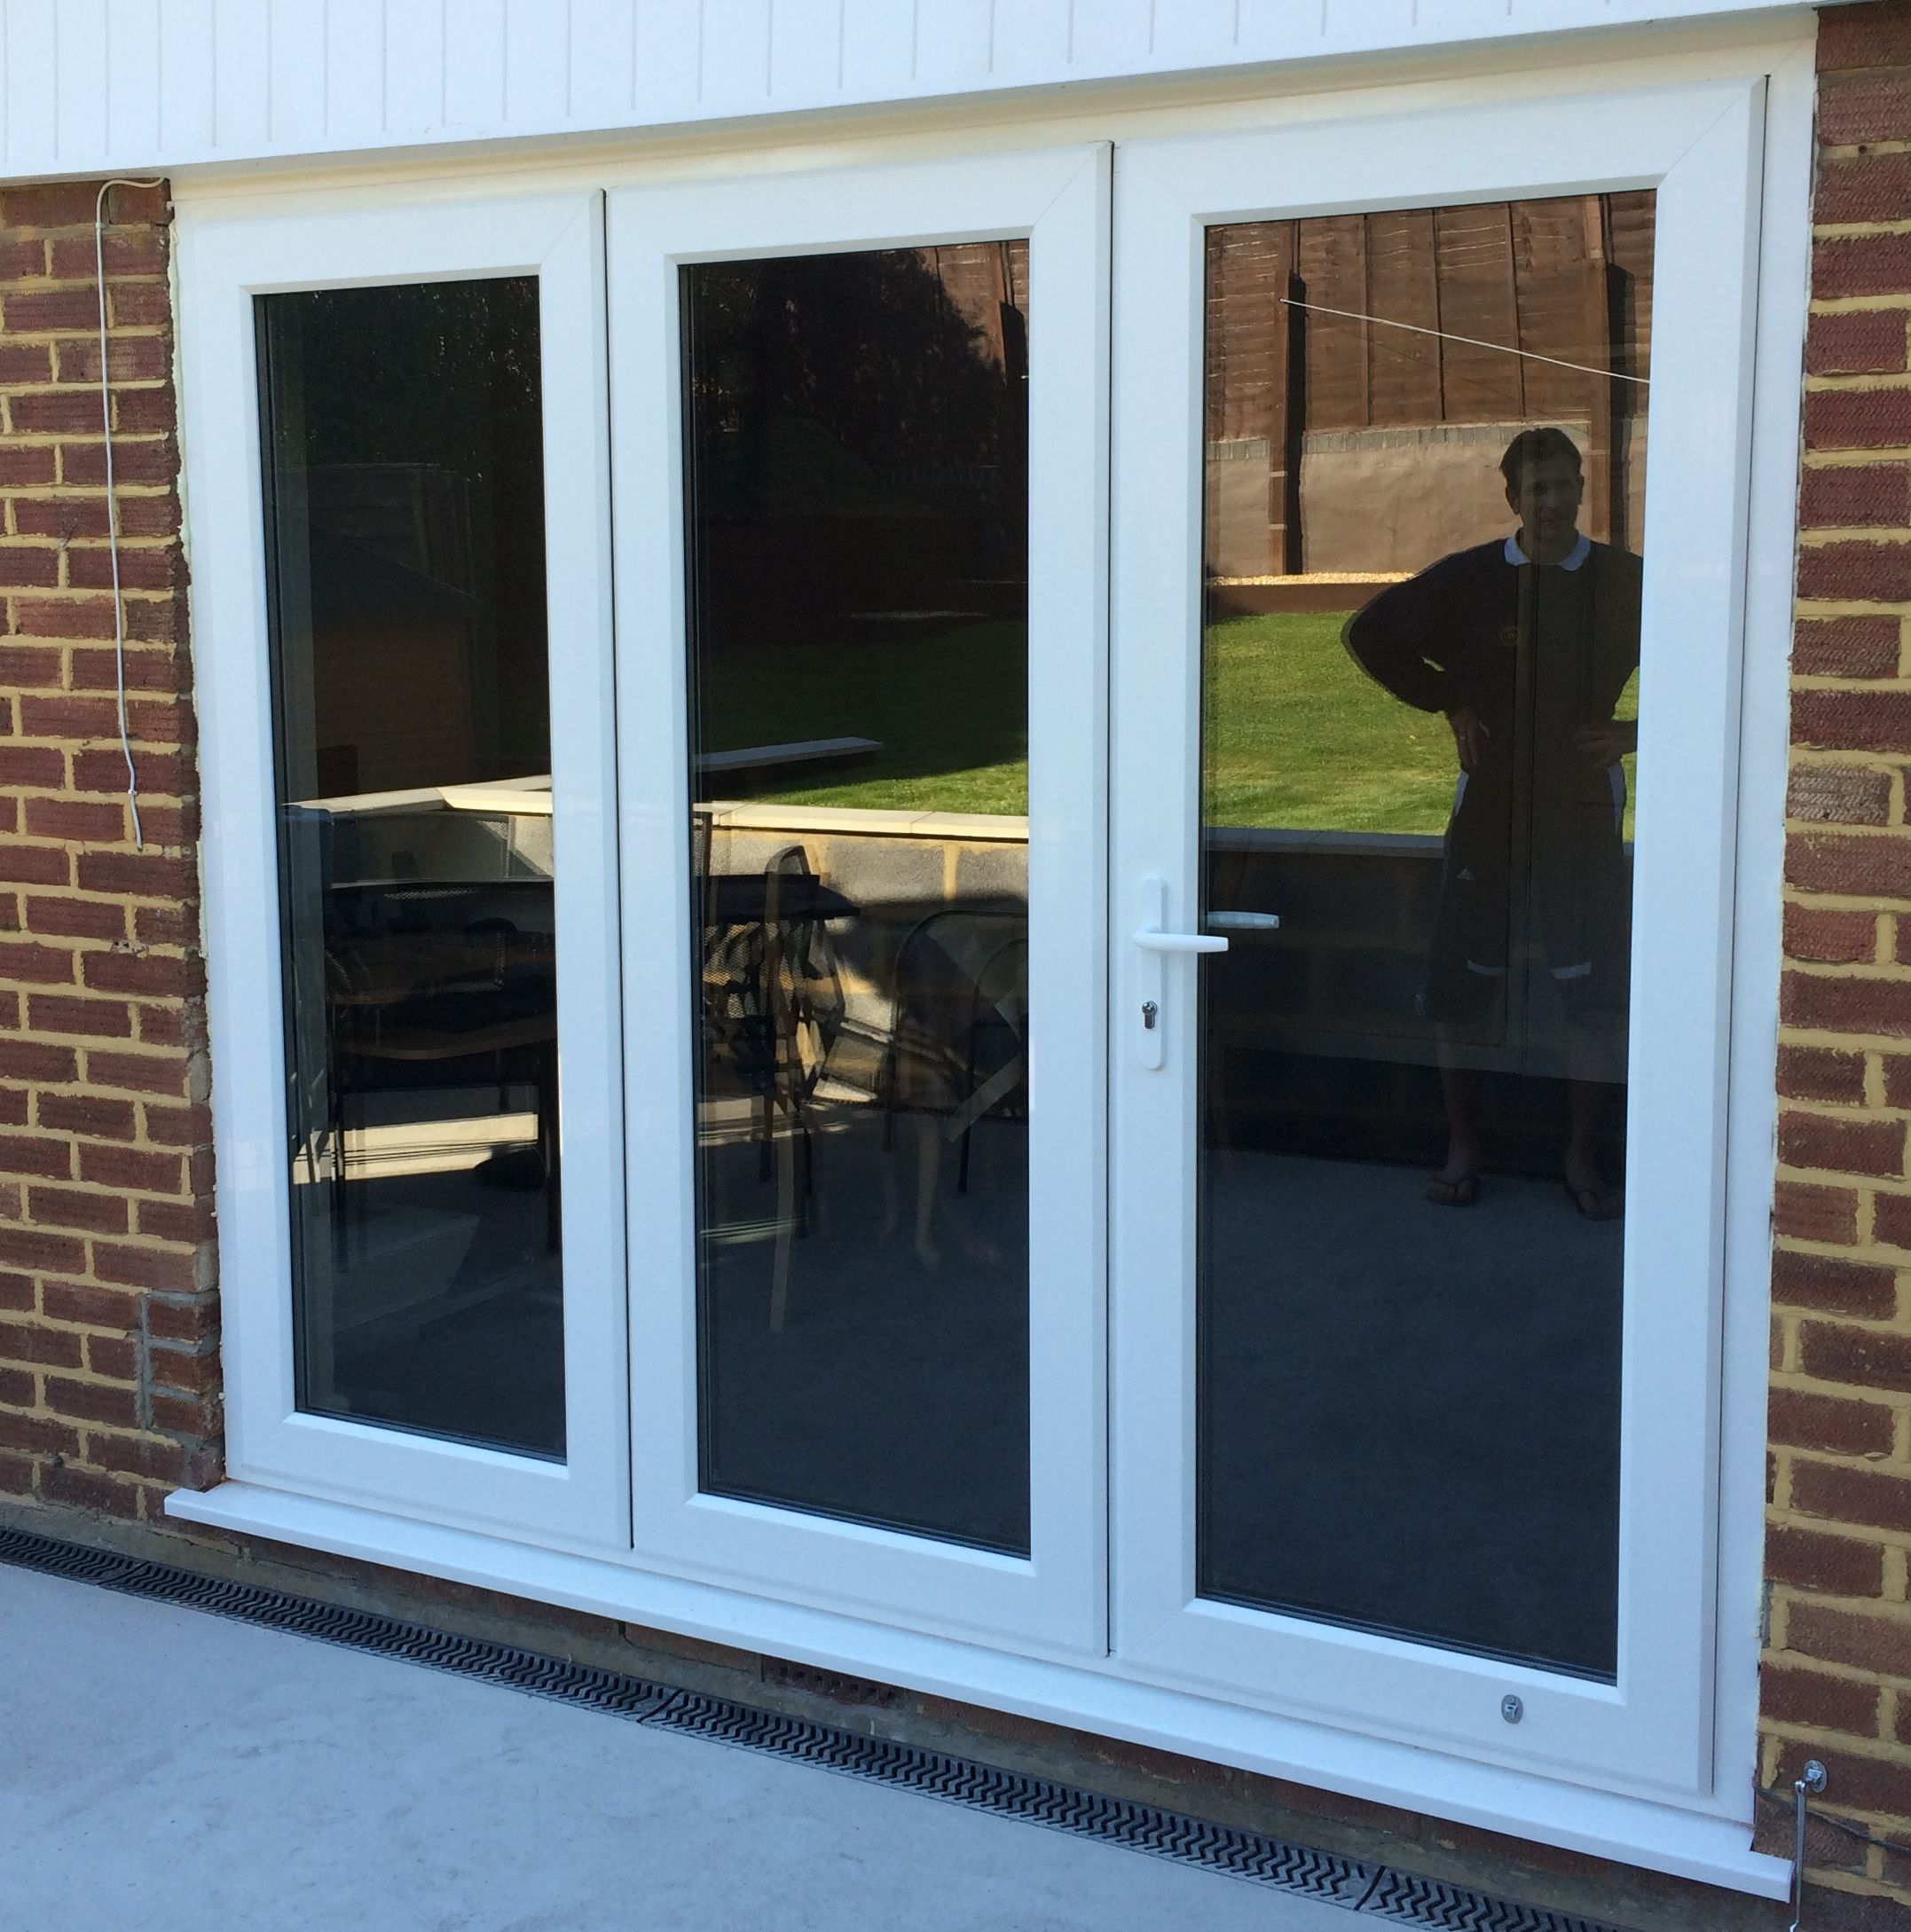 Securi Slide Fold Door Closed The Individual Panels Interlock With Each Other For Increased Security See The Video On Ou Sliding Folding Doors Upvc Doors